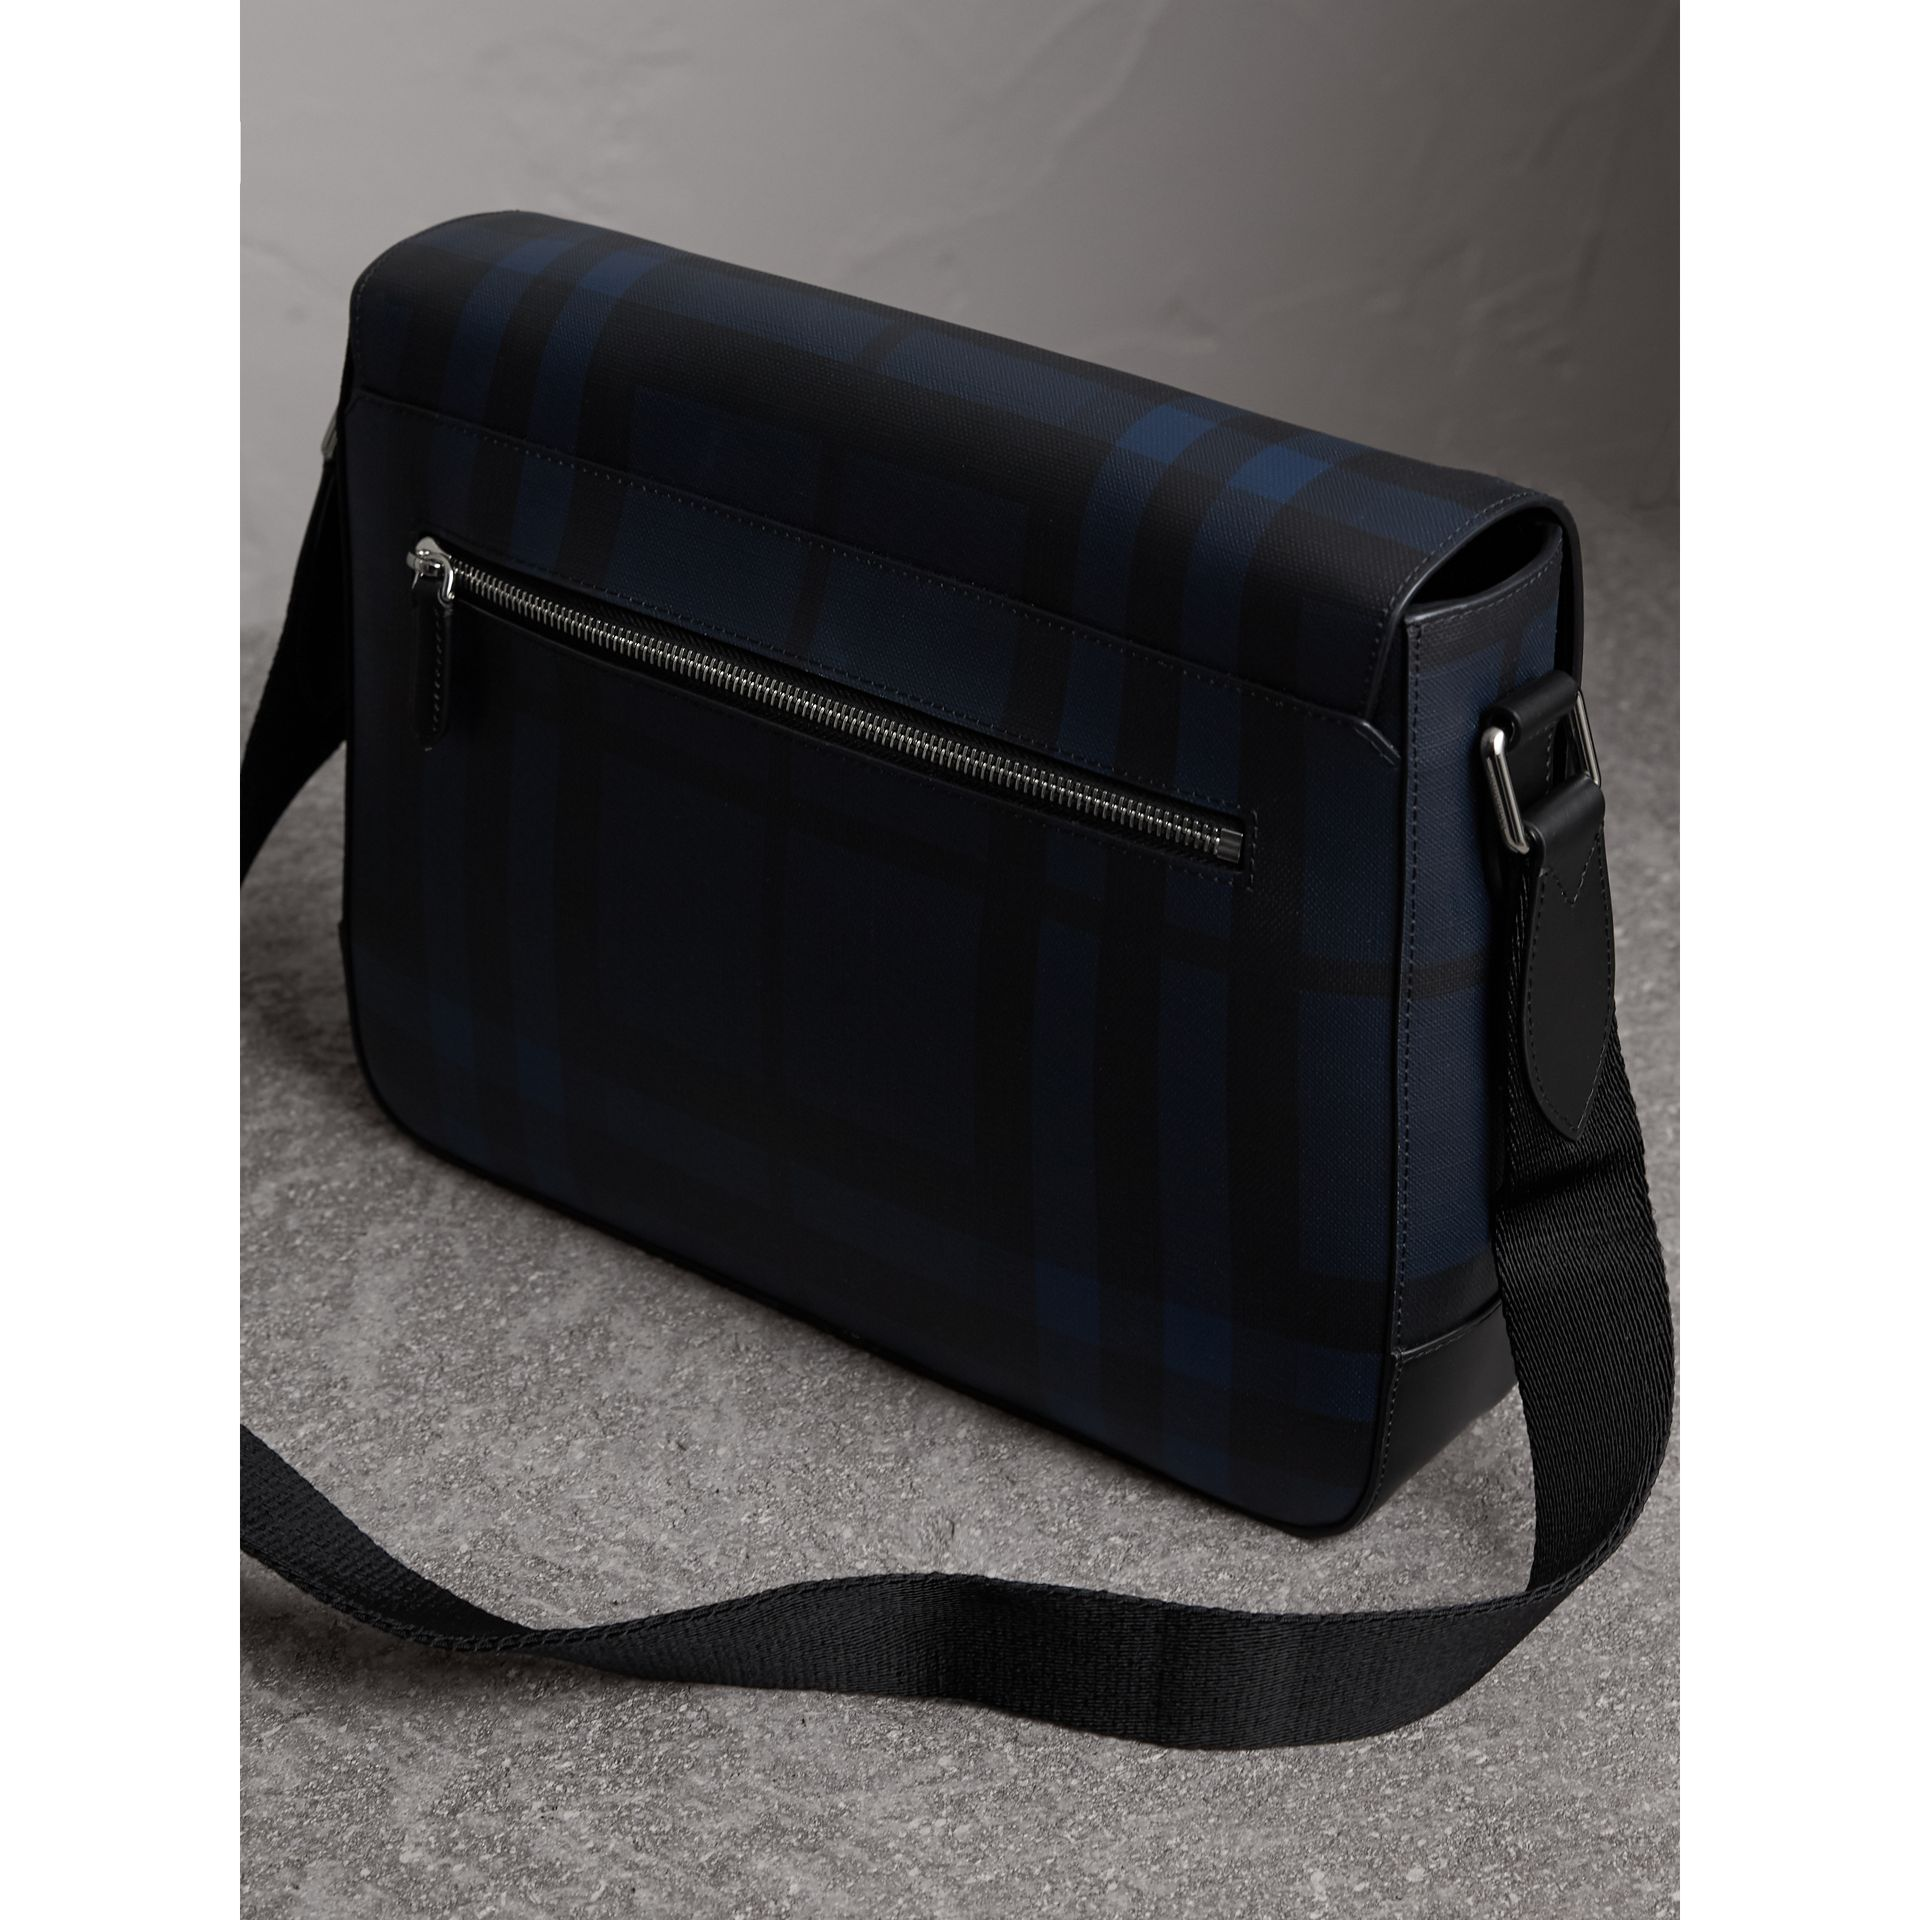 399a869a0813 Shop Burberry Medium Leather Trim London Check Messenger Bag In Navy ...